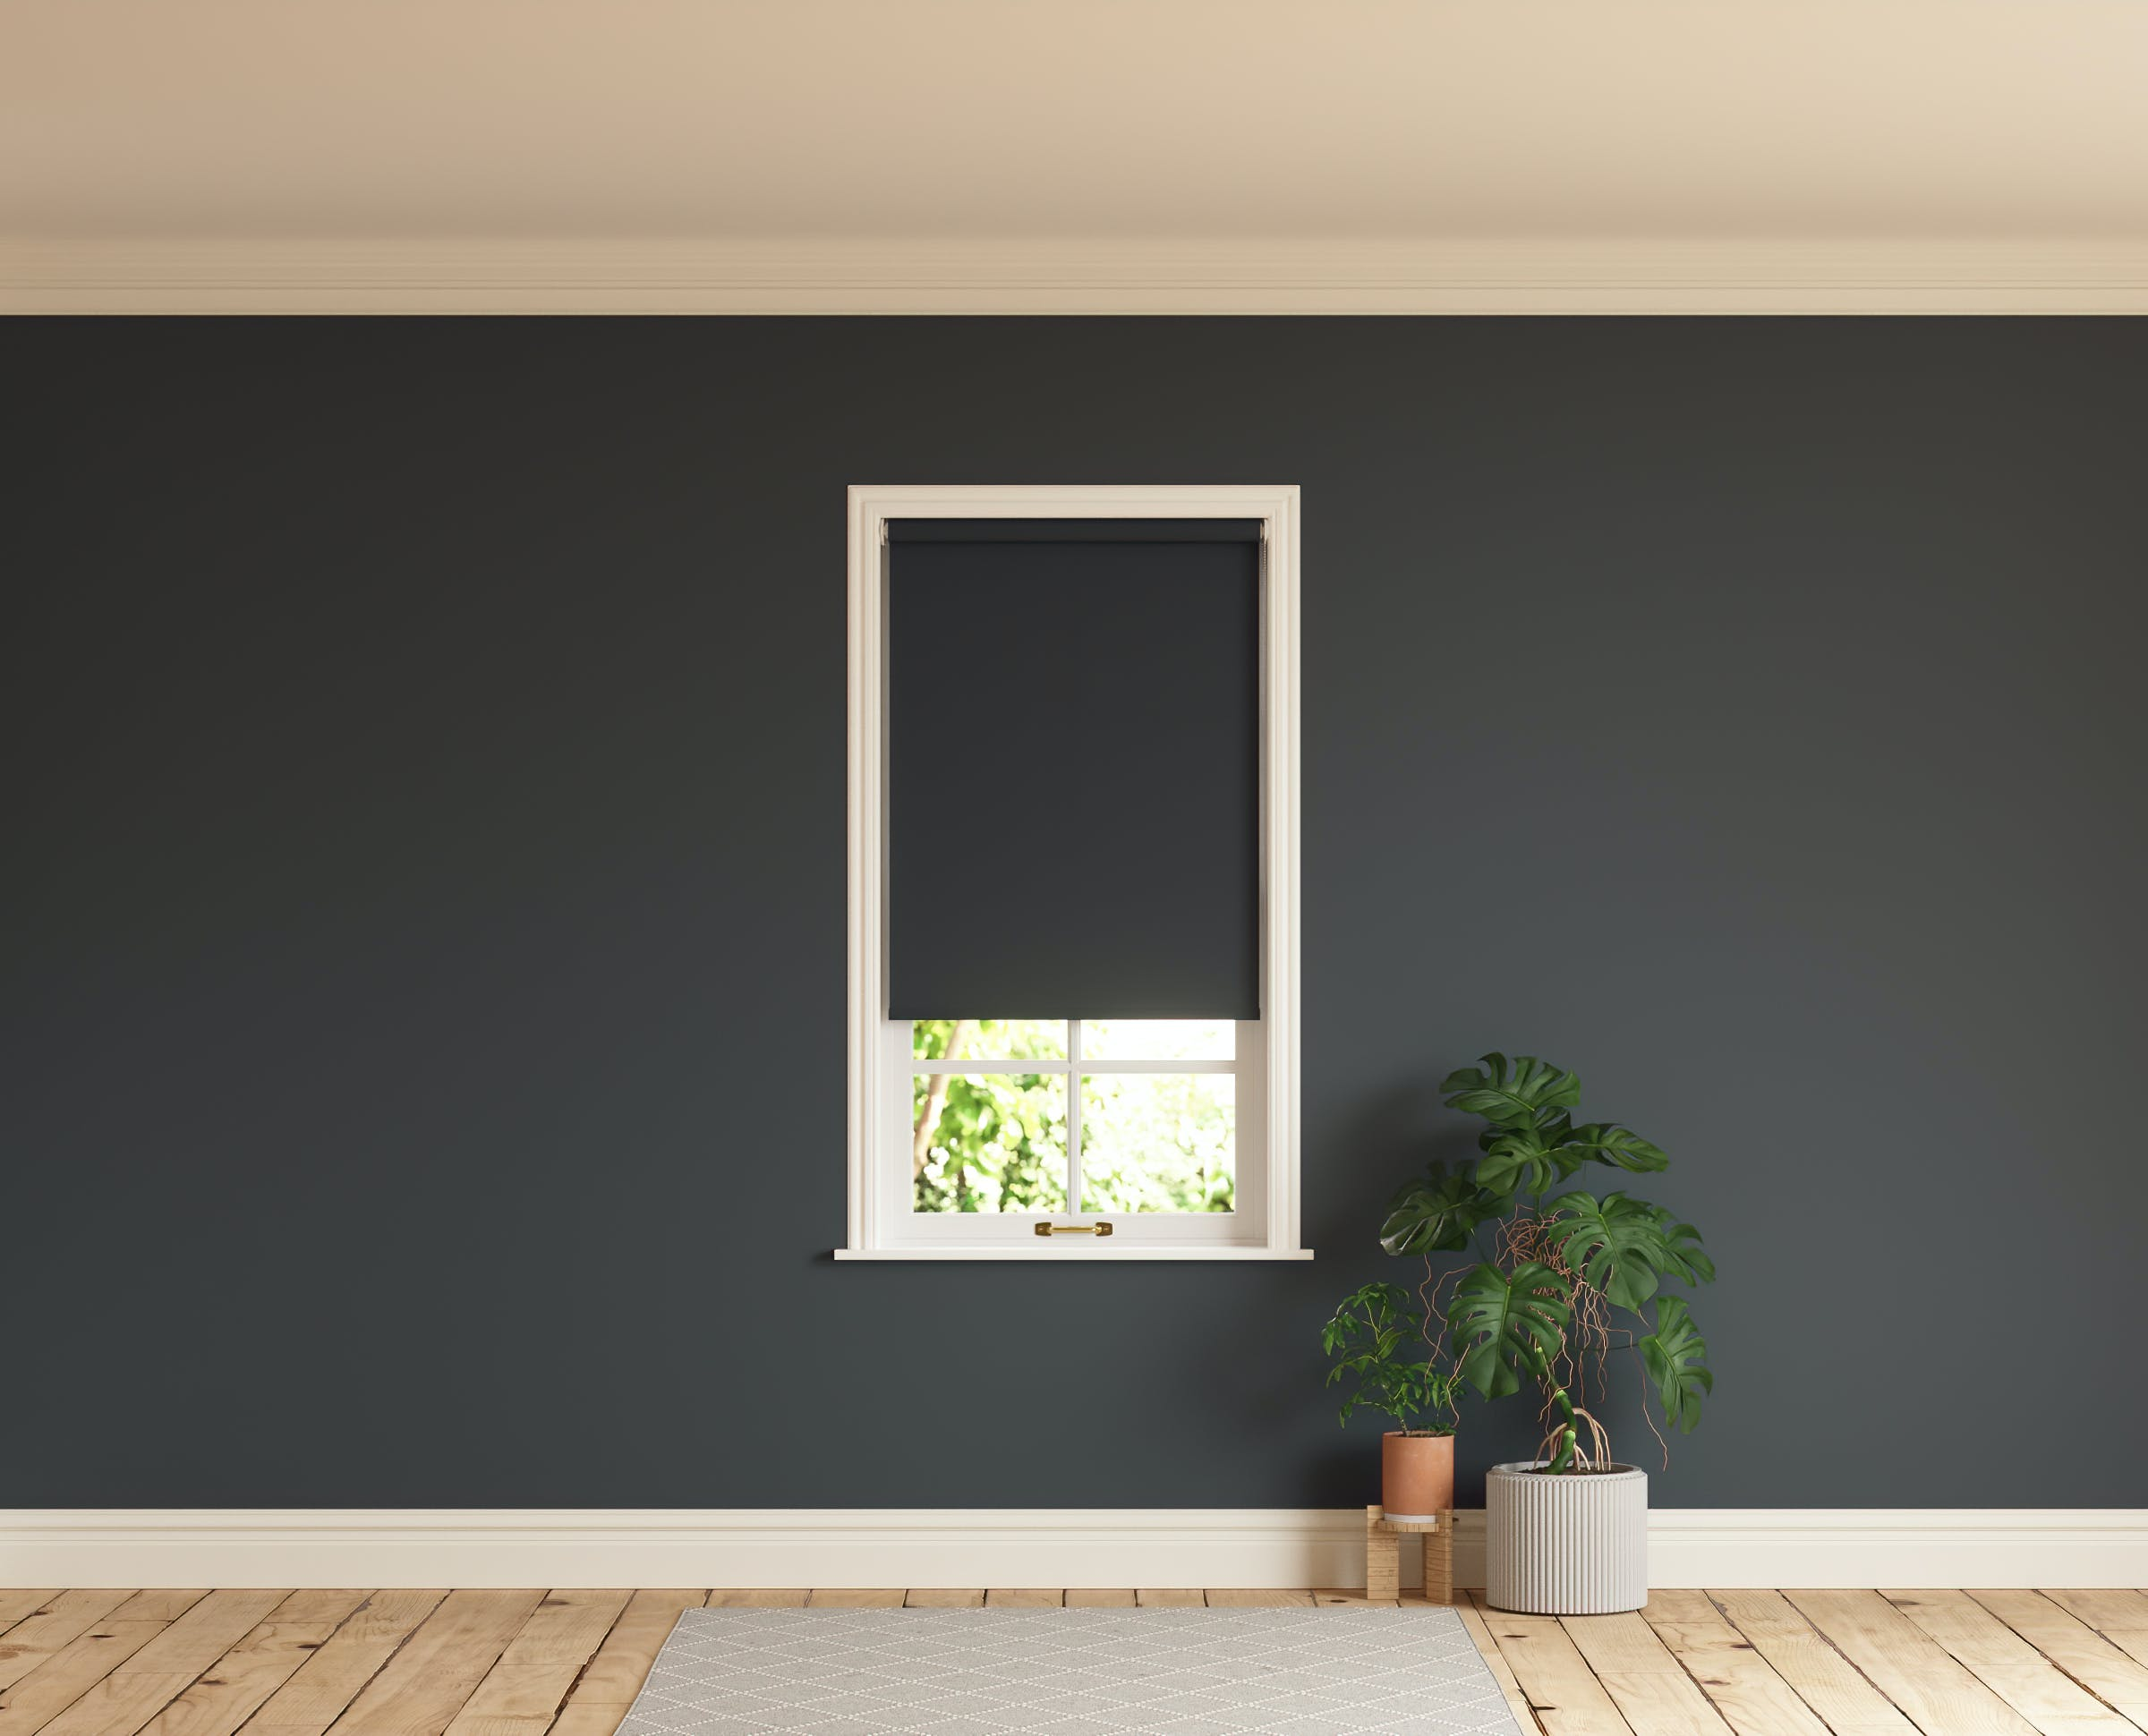 Room with walls painted in Lick Black 02 and Black 02 roller blinds